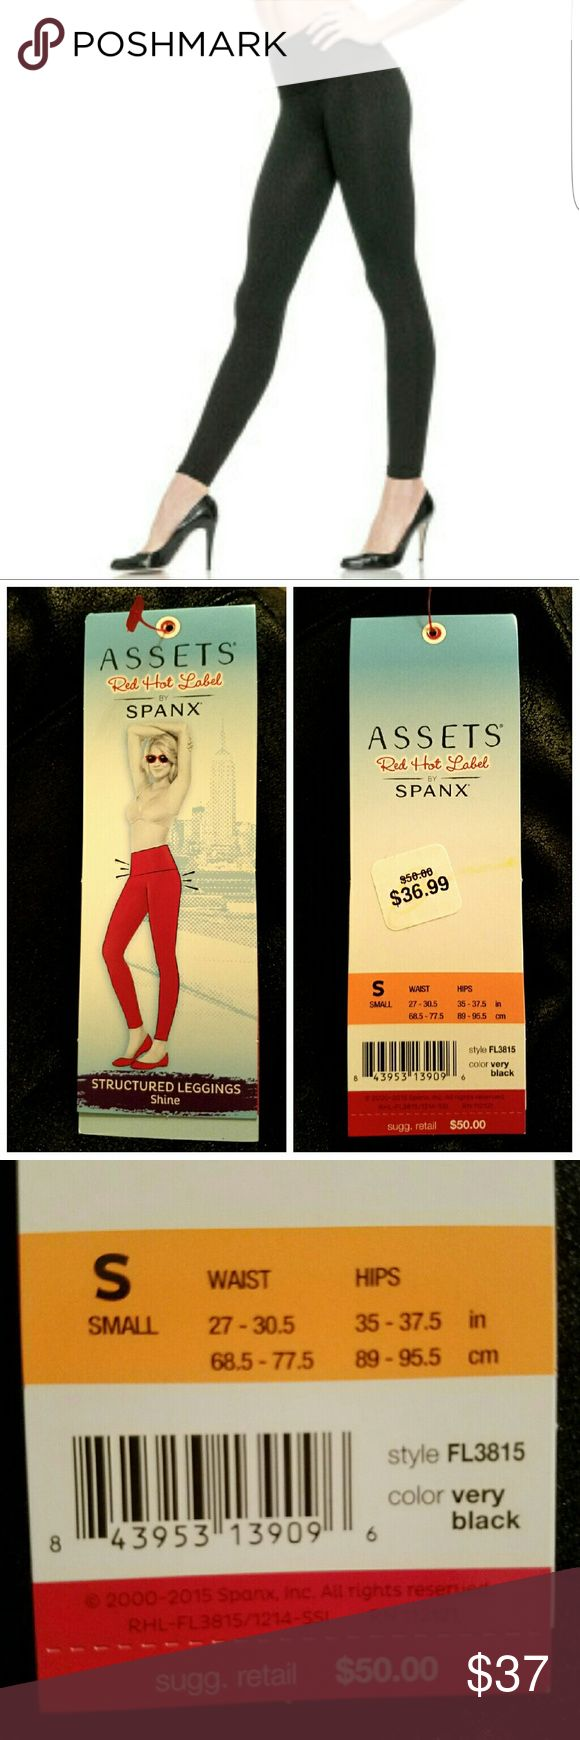 🆕 NWT SPANX Structured Leggings in Black Shine Awesome for fall! NWT SPANX Red Hot Label structured leggings in very black shine. Retail is $50 on these. Your chance to get quality leggings at a great price.Super sexy textured finish and built in tummy support! These will be your favorite leggings this fall! SPANX Pants Leggings